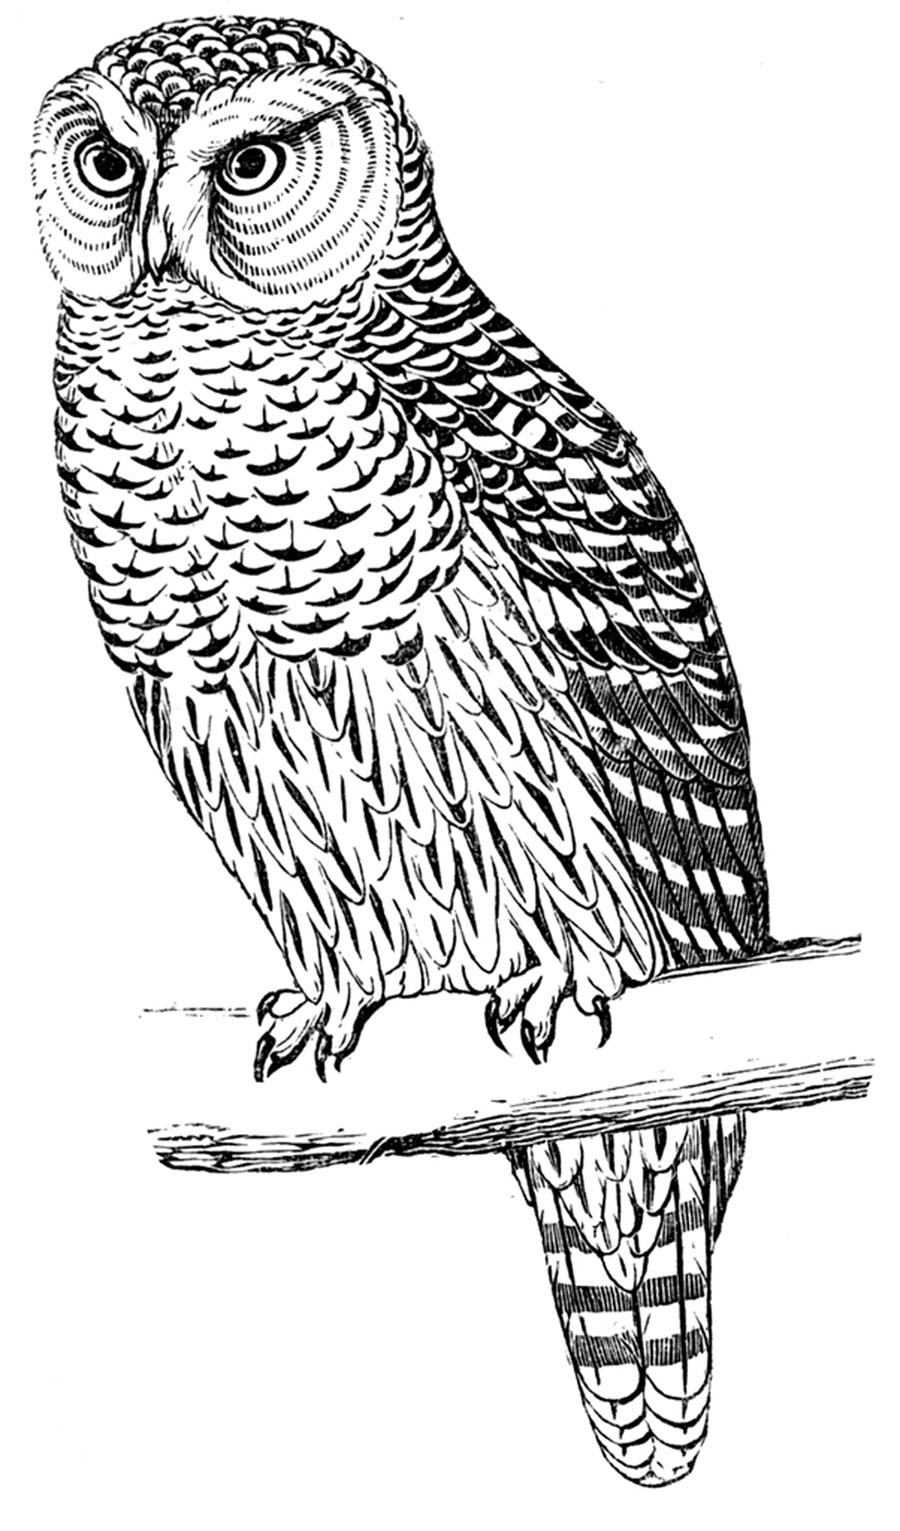 coloring pictures of owls owl coloring pages for adults free detailed owl coloring owls pictures coloring of